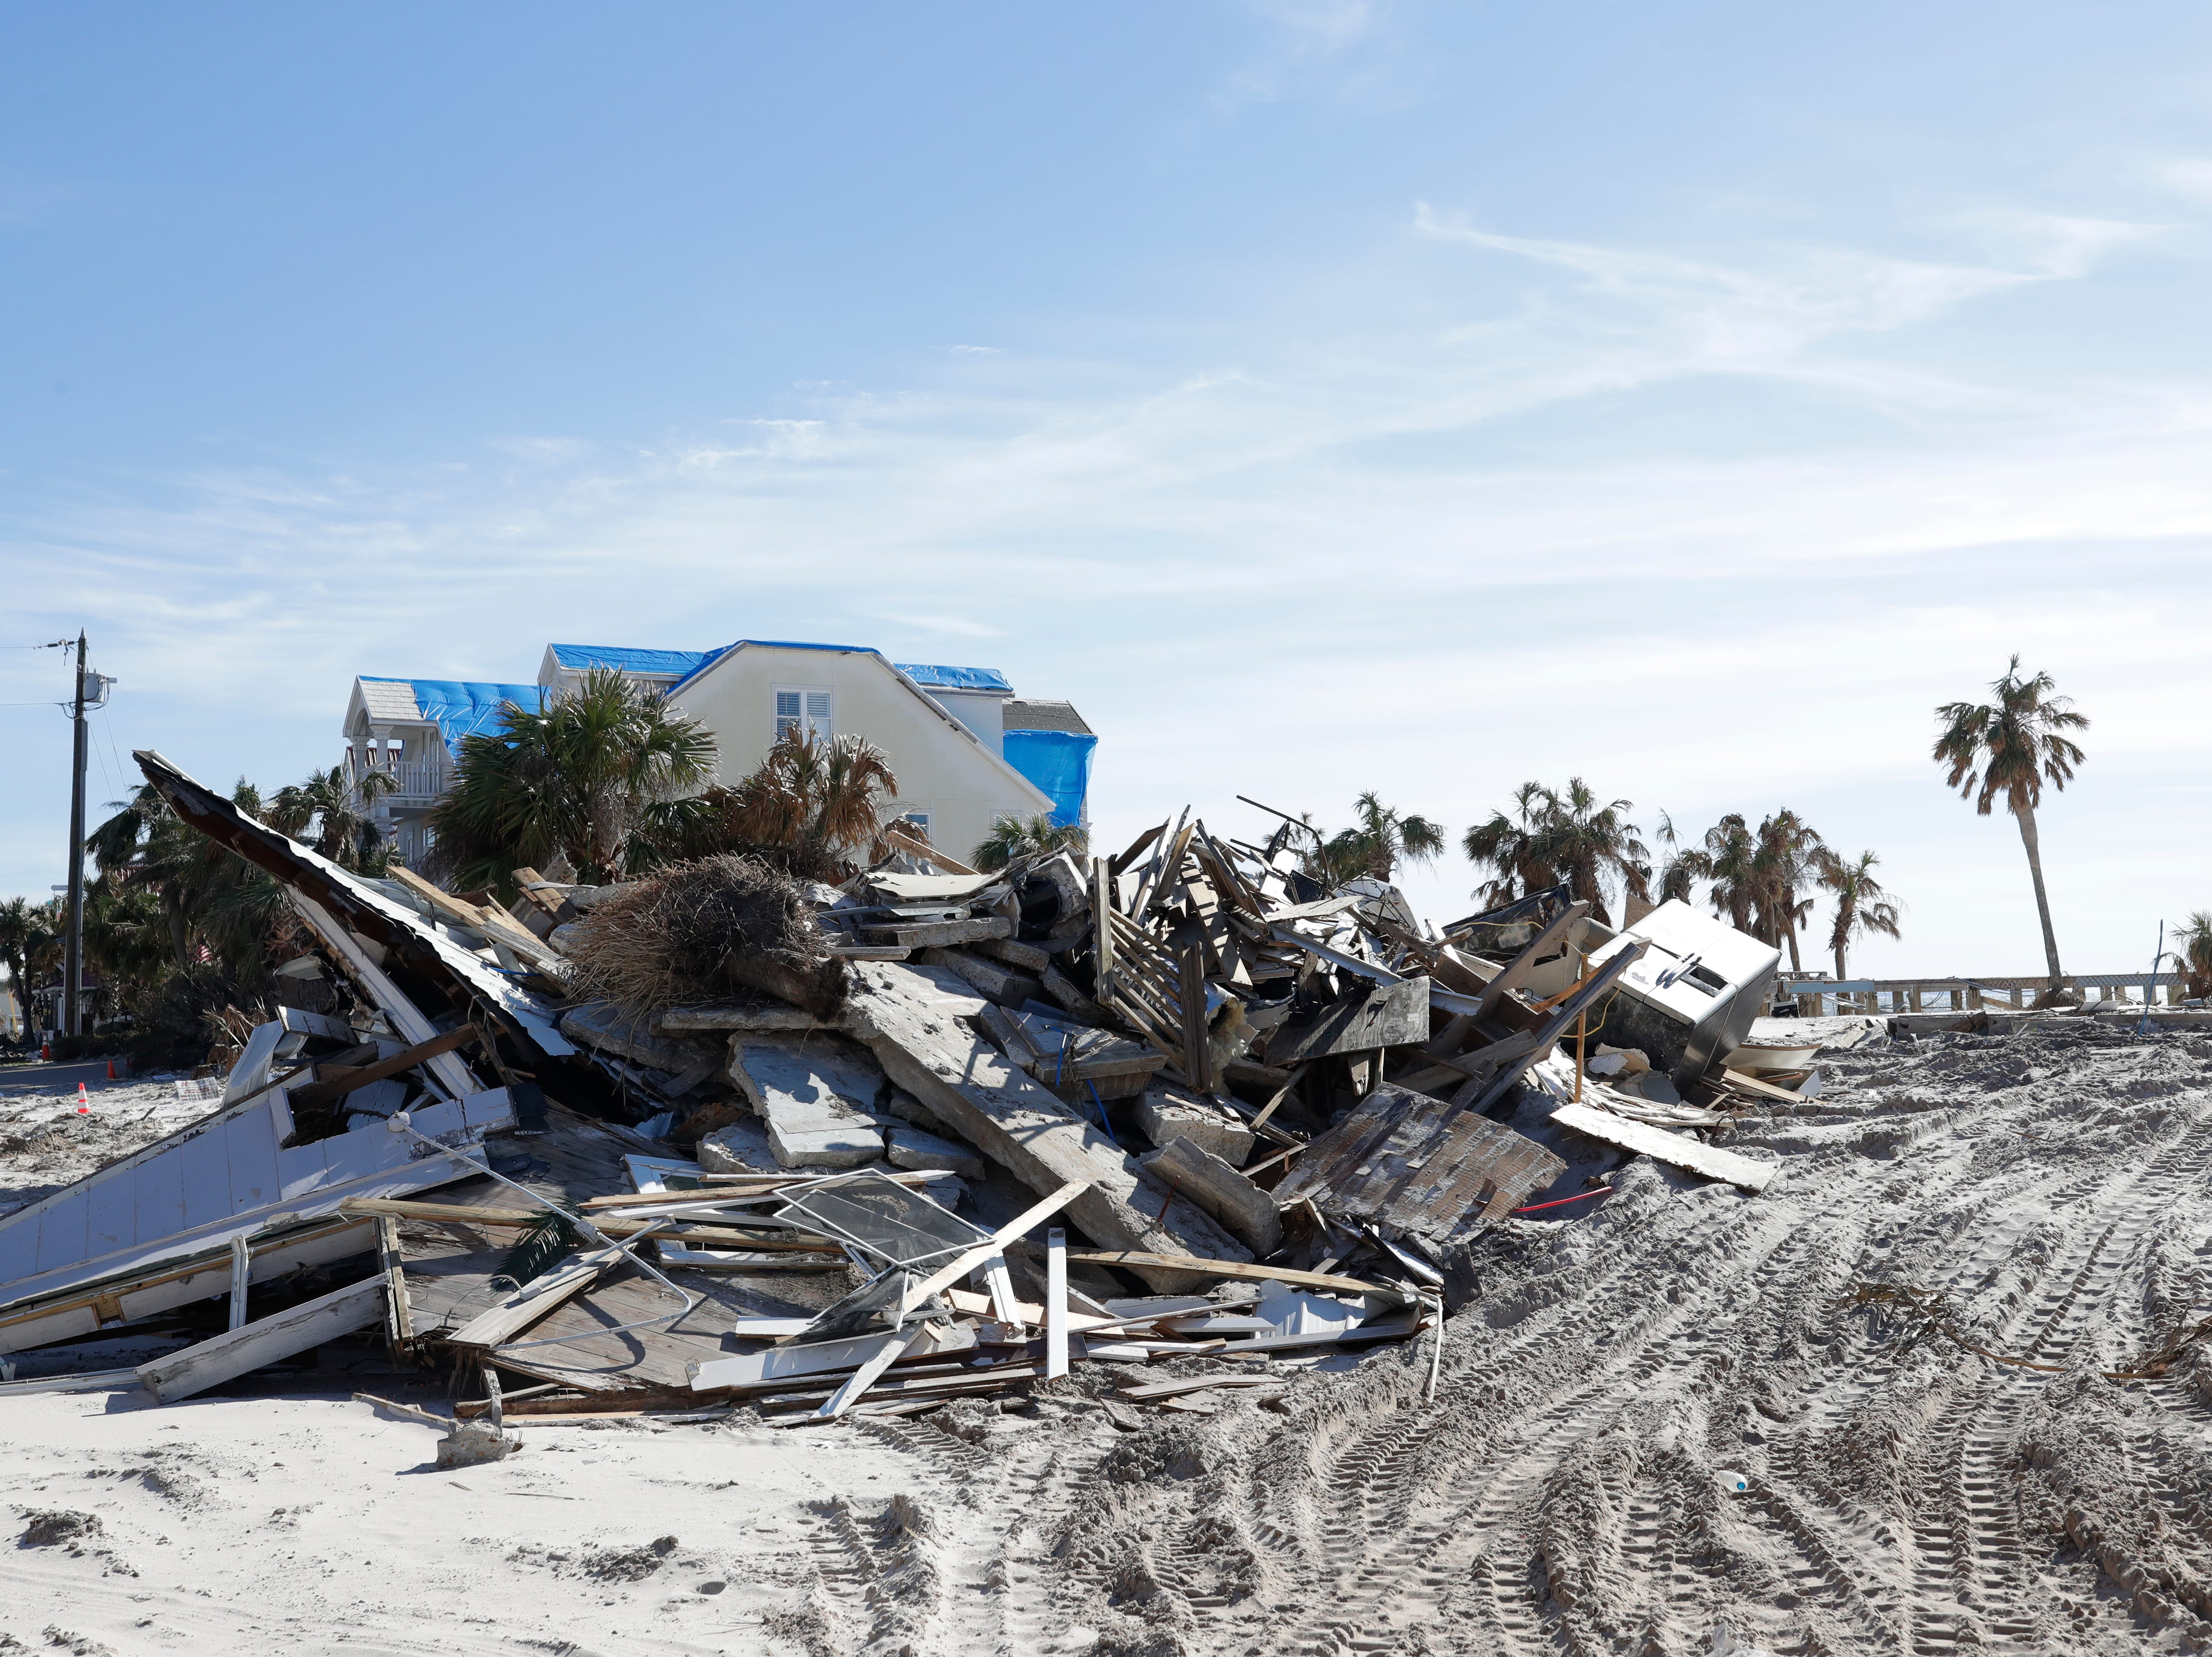 Piles of debris line the streets of Mexico beach, Wednesday, Jan. 9, 2019. Hurricane Michael left the panhandle in a total disarray on Oct. 10, 2018.